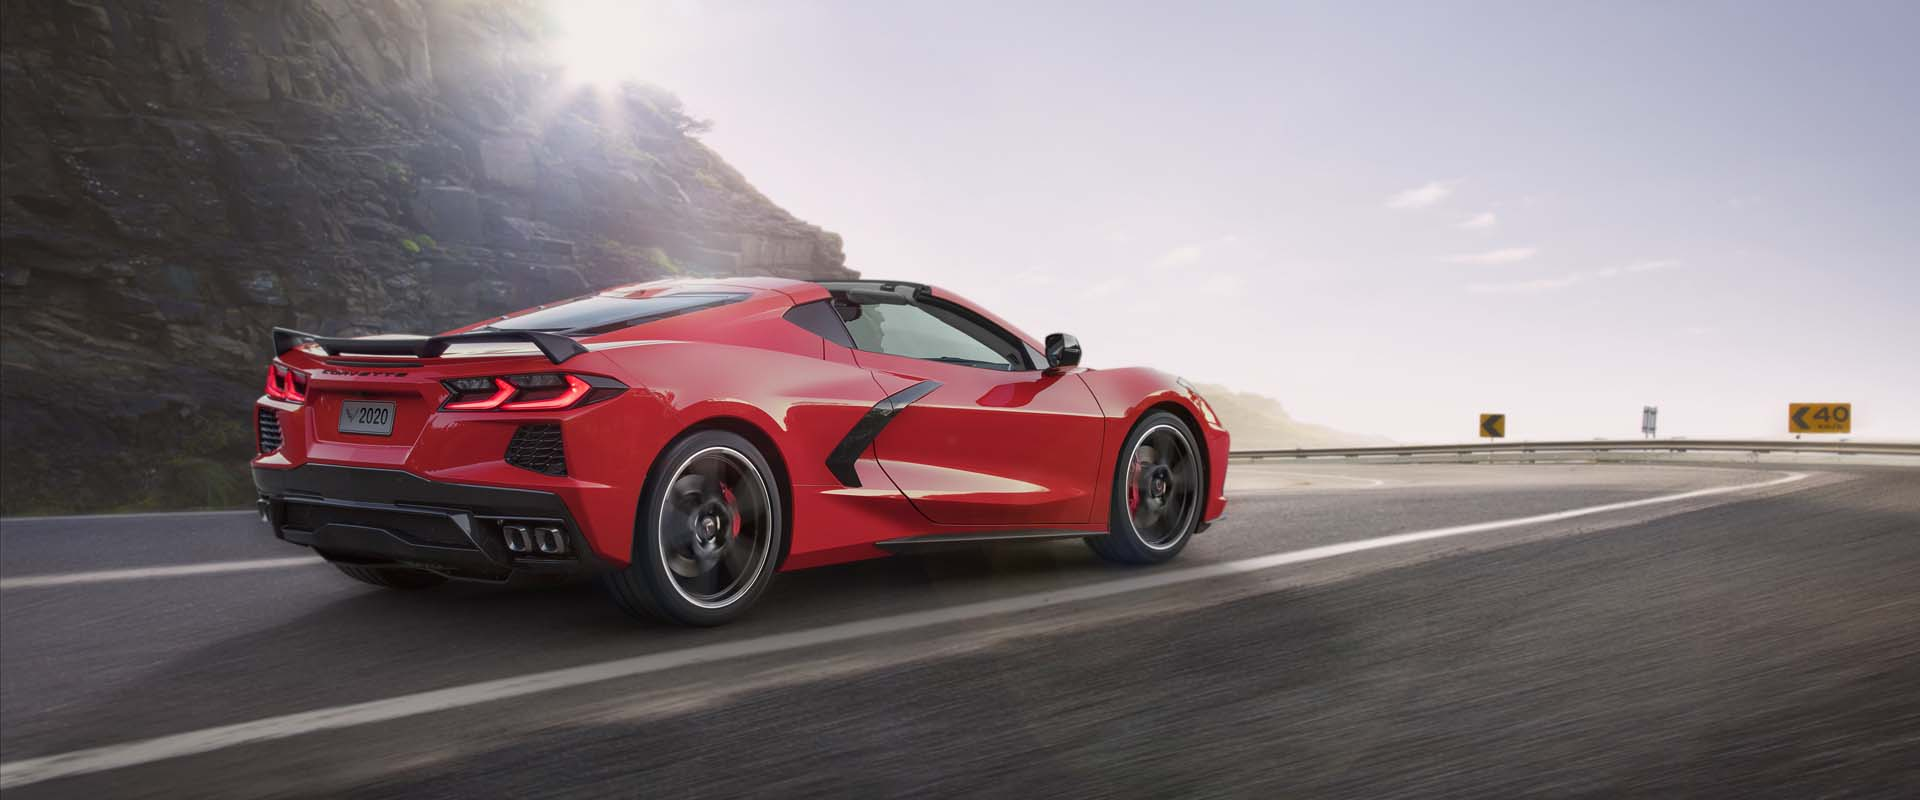 2020 Chevy Corvette Stingray buyers can customize VIN--for a price